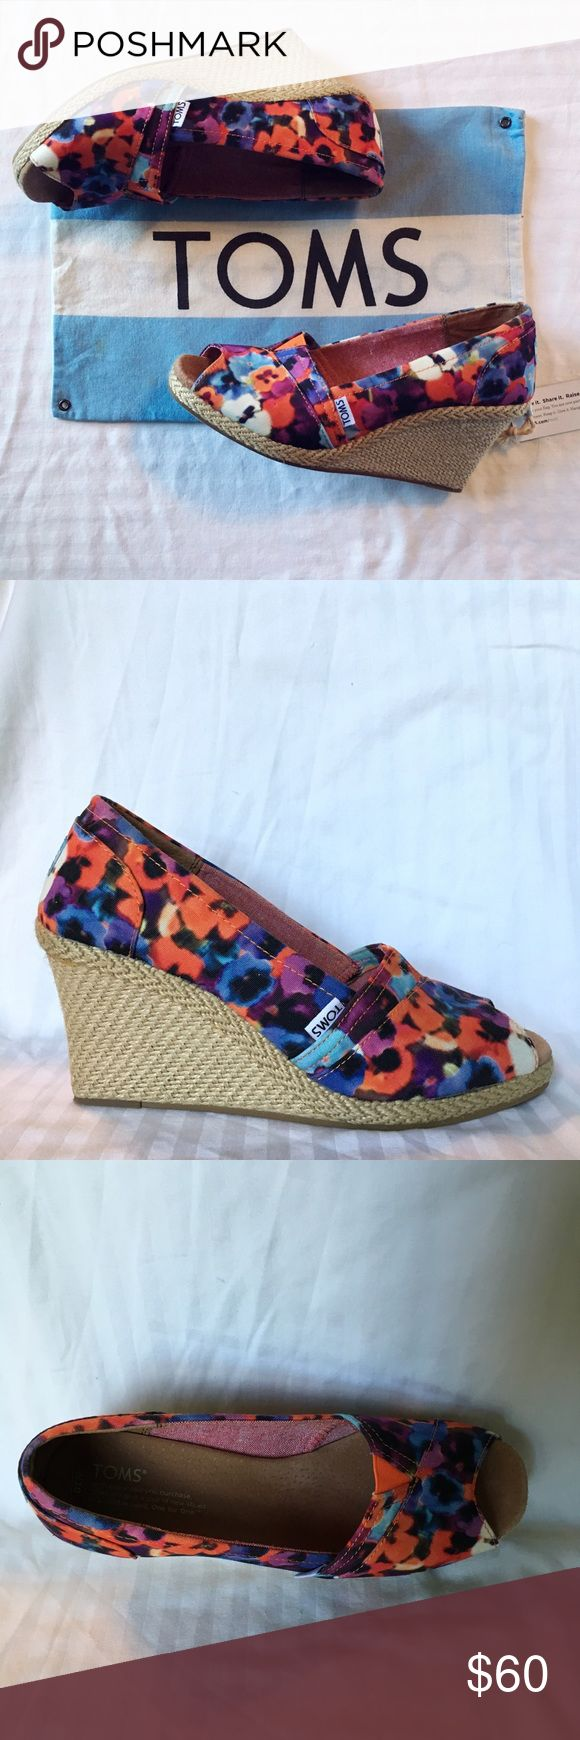 colorful floral toms wedges floral toms wedges. perfect for spring. bag included. TOMS Shoes Wedges